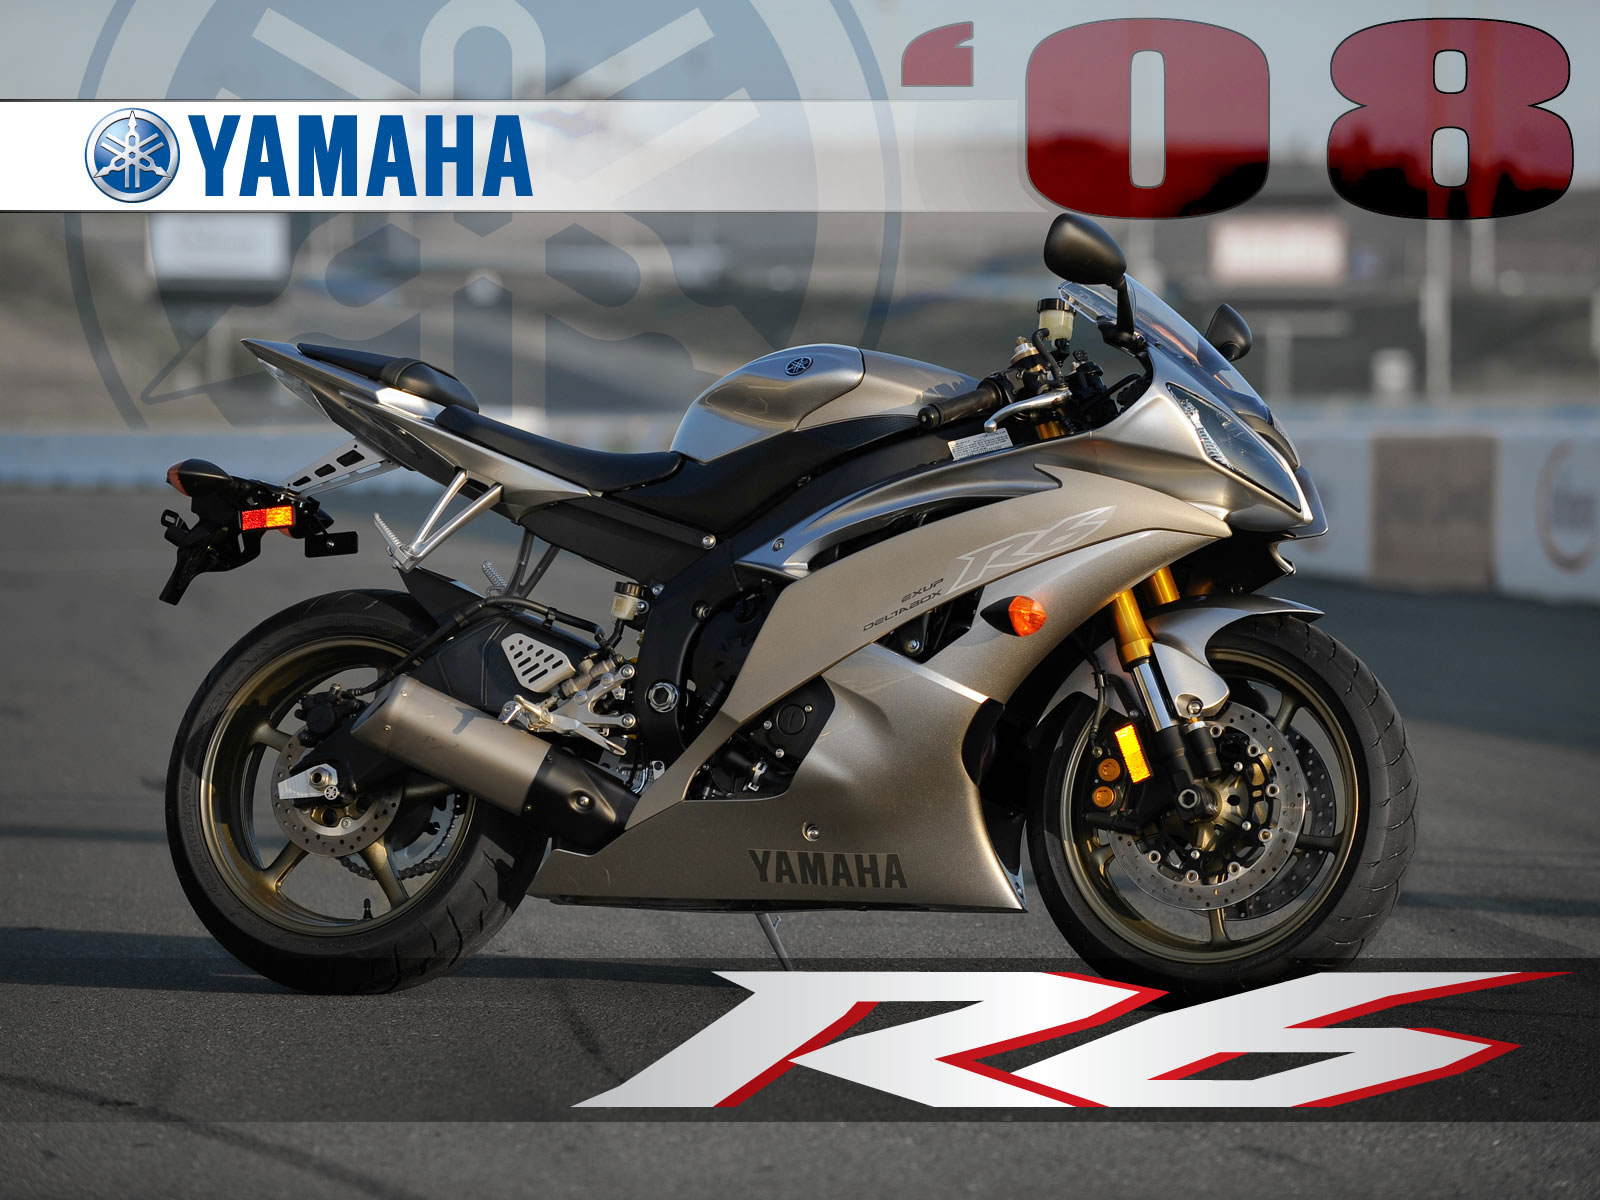 2008 yamaha yzf r6 pics specs and information onlymotorbikes com rh onlymotorbikes com 2008 yzf r6 specs 2008 r6 fork specs